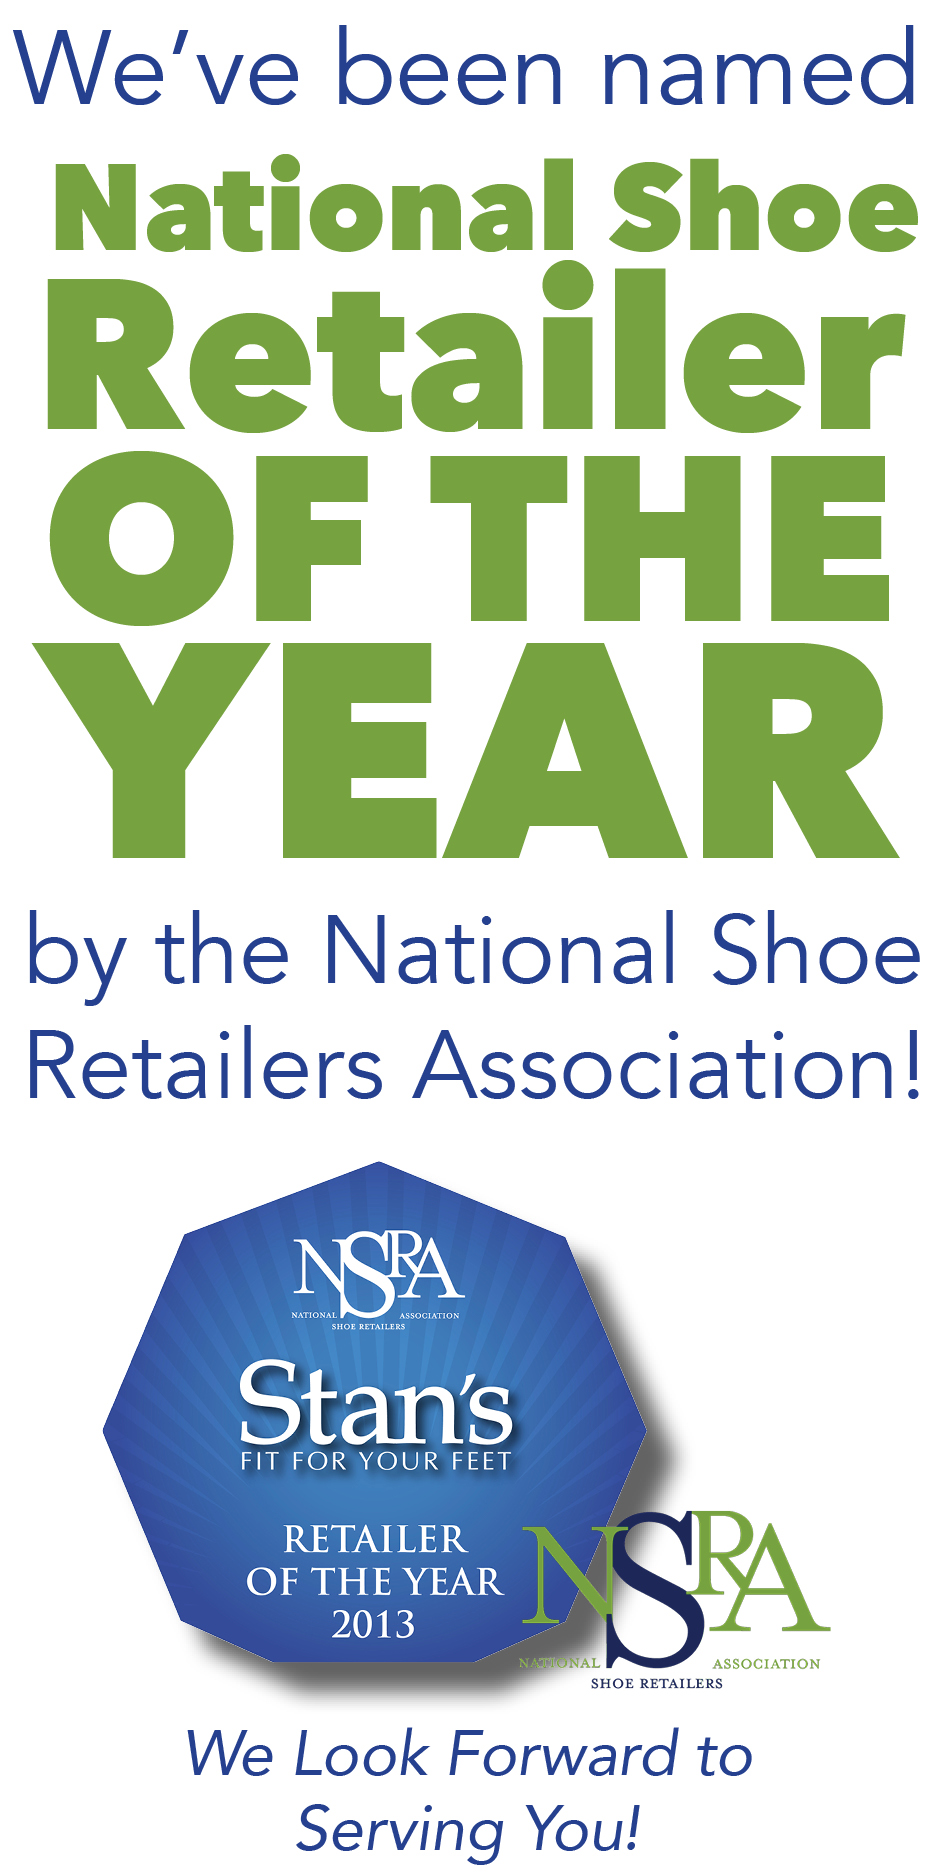 National Shoe Retailer of The Year Stan's Fit For Your Feet